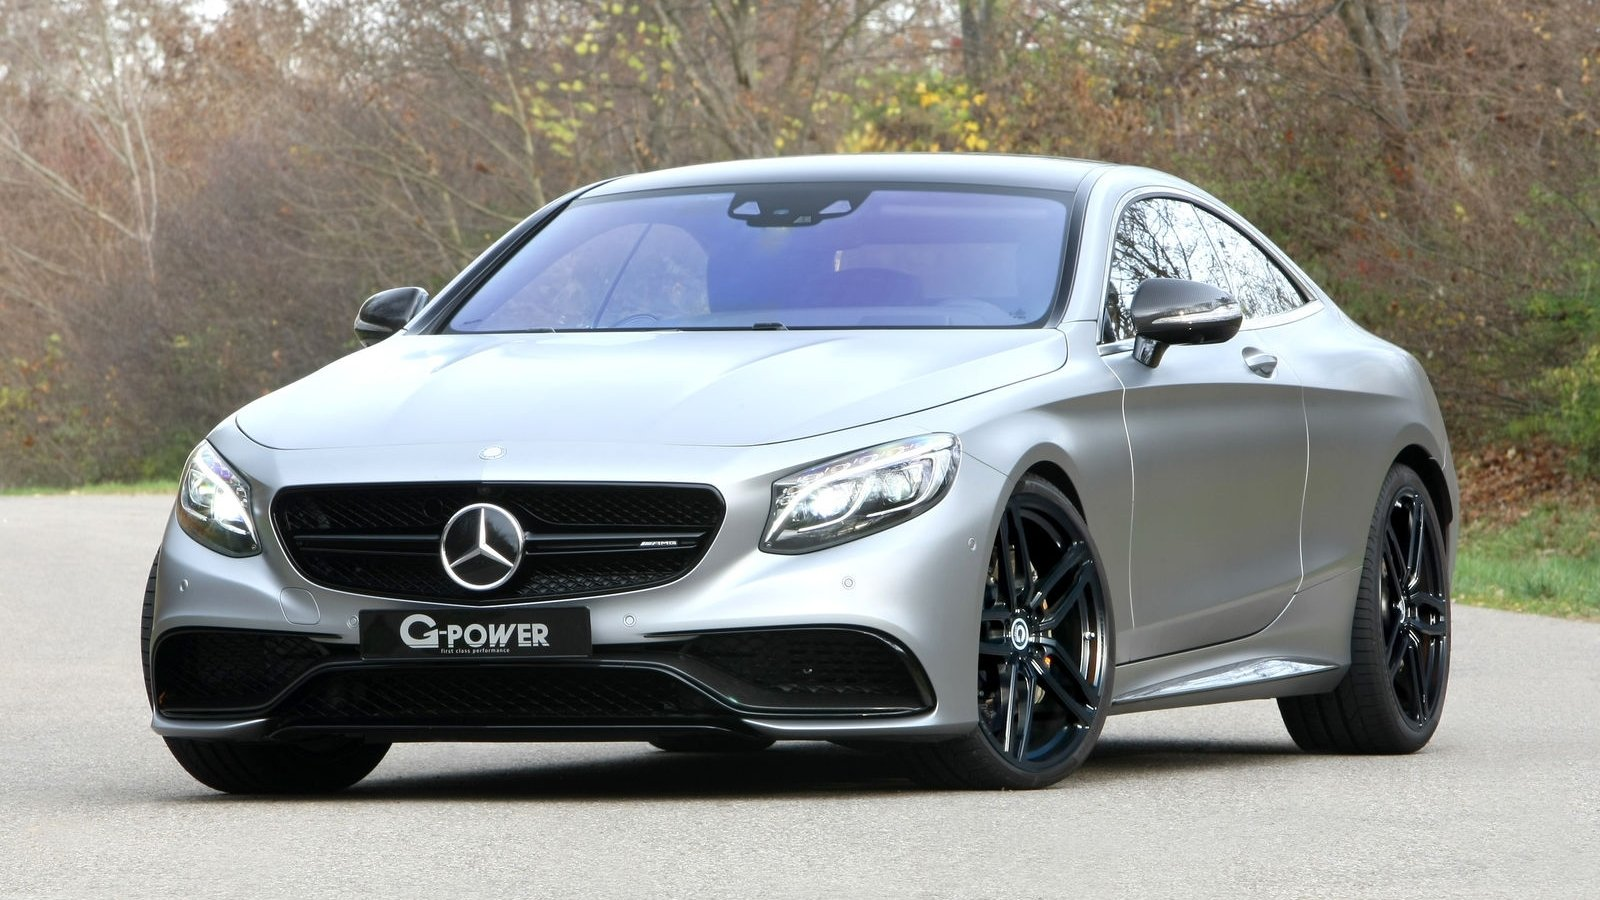 2016 mercedes amg s63 coupe by g power picture 668955. Black Bedroom Furniture Sets. Home Design Ideas